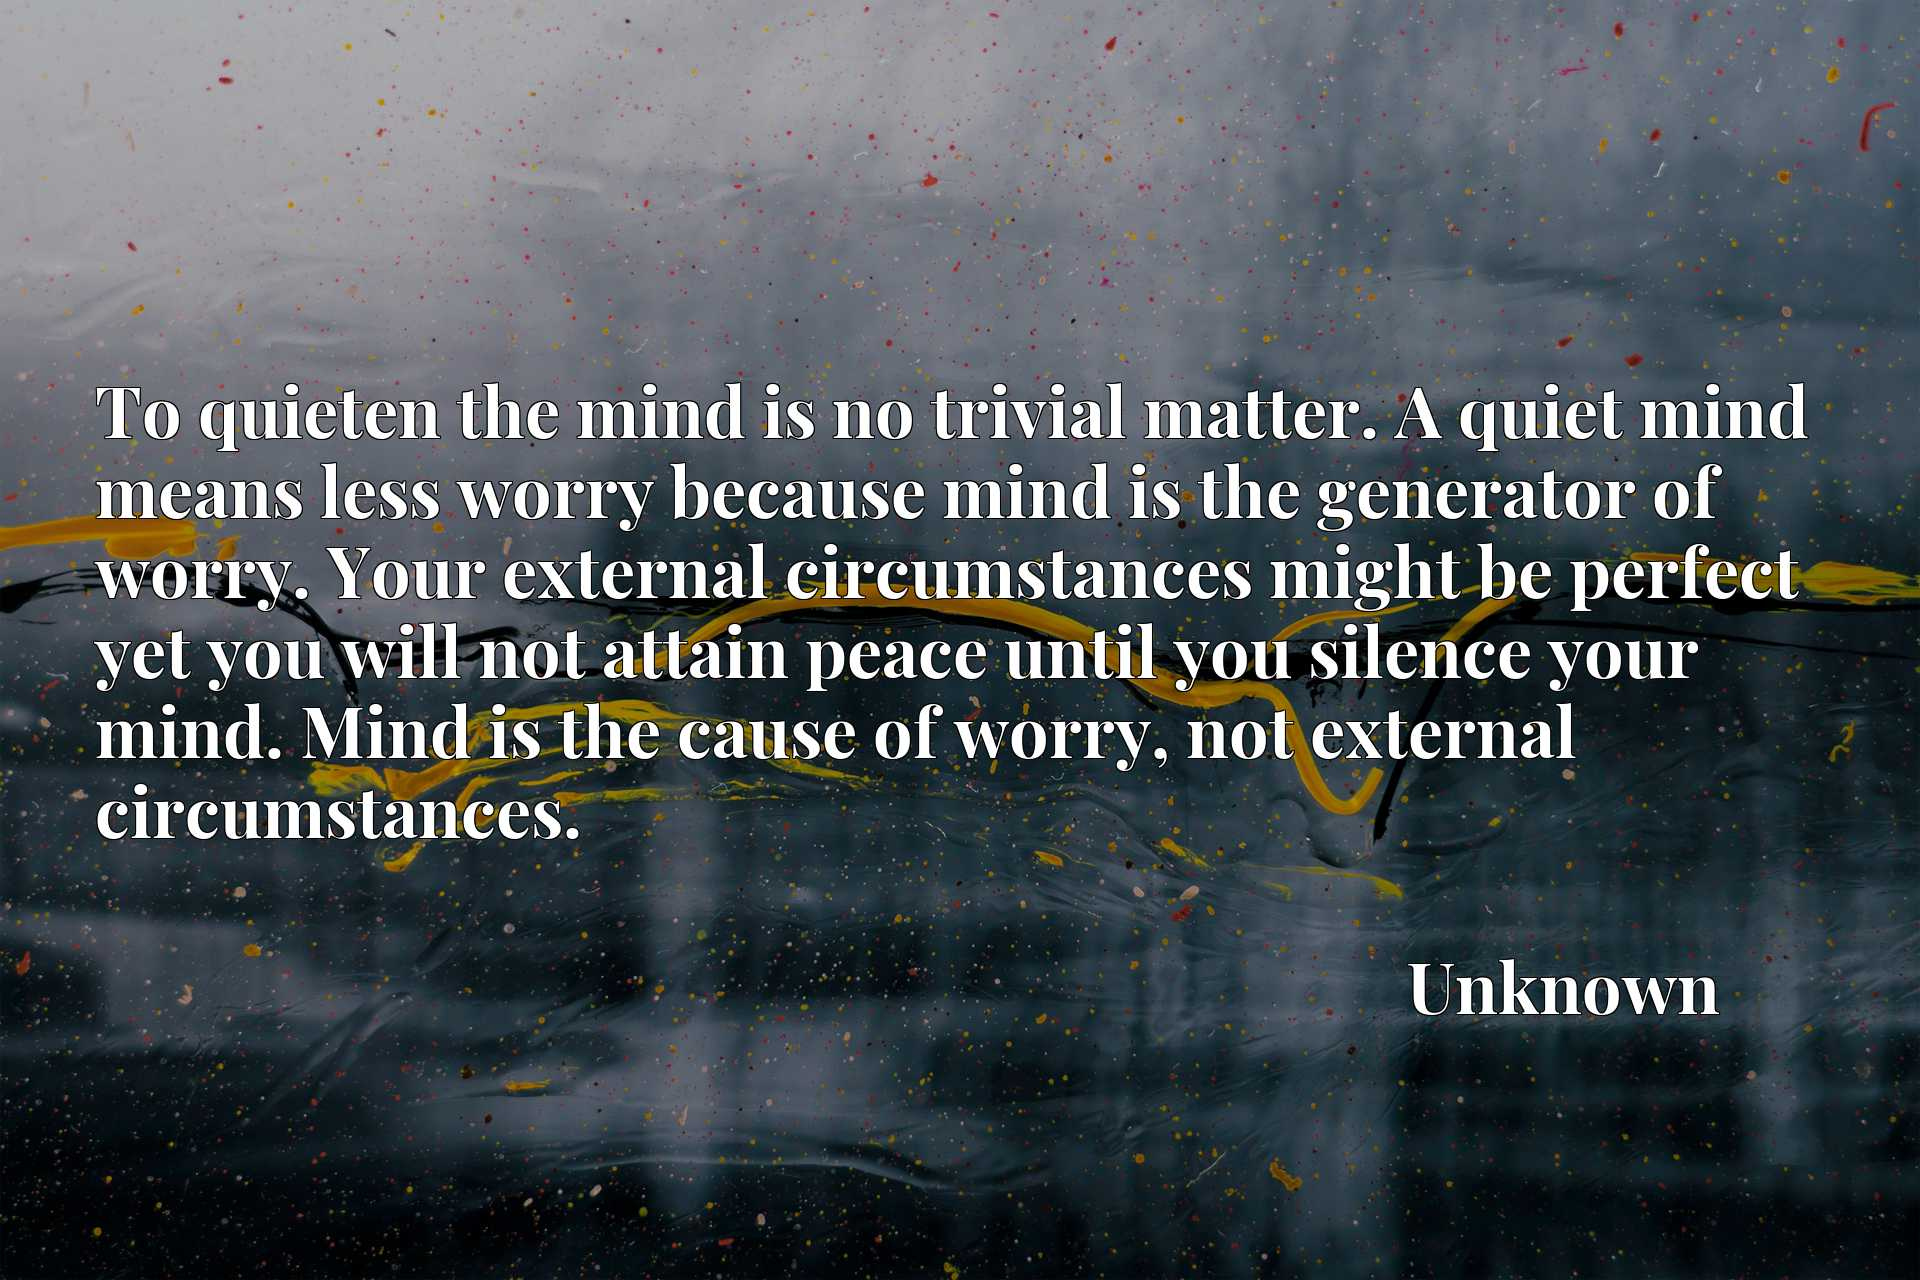 To quieten the mind is no trivial matter. A quiet mind means less worry because mind is the generator of worry. Your external circumstances might be perfect yet you will not attain peace until you silence your mind. Mind is the cause of worry, not external circumstances.